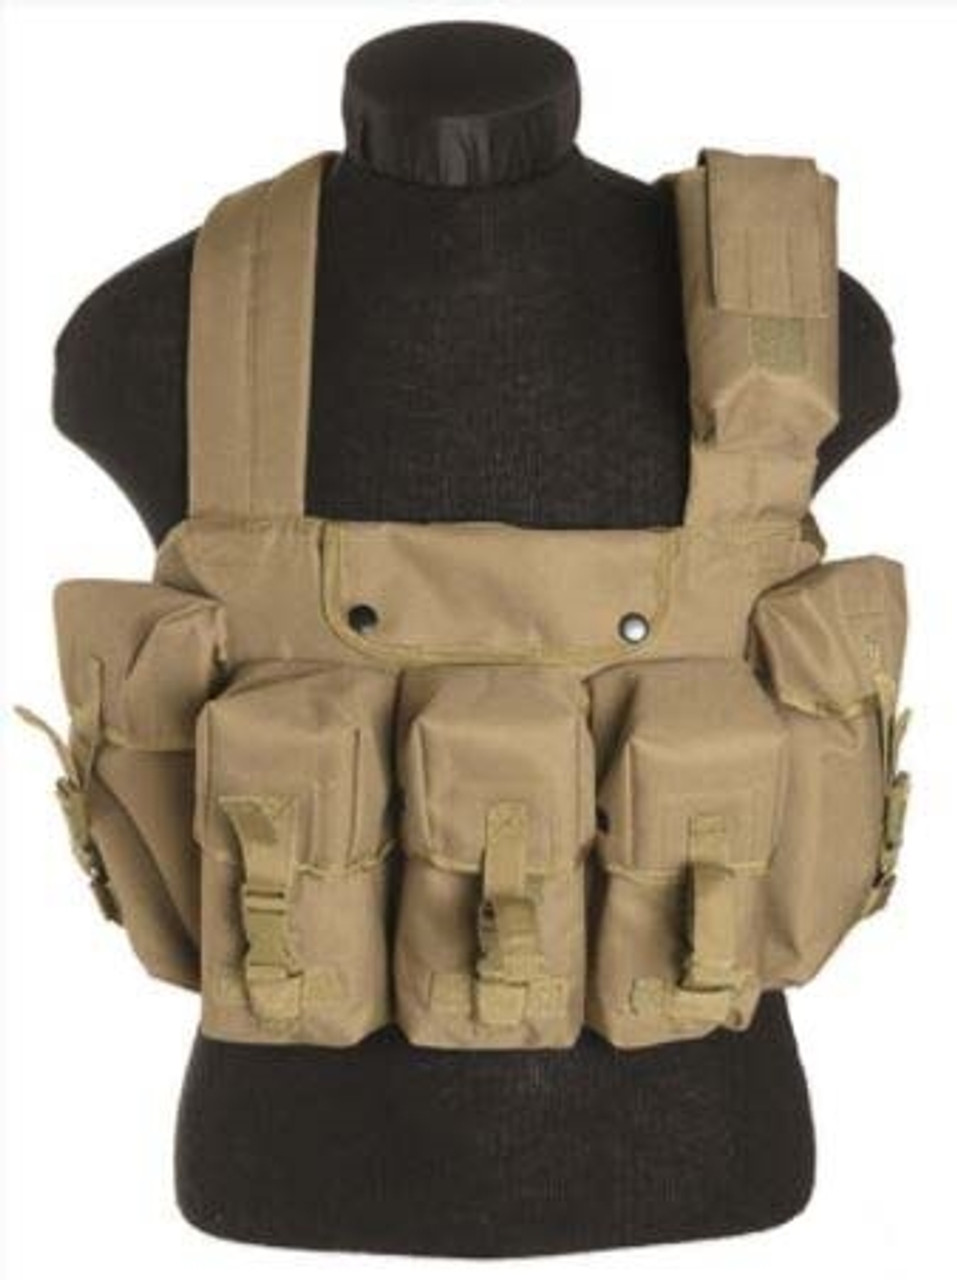 Mil-Tec Coyote 6 Pocket Chest Rig from Hessen Antique